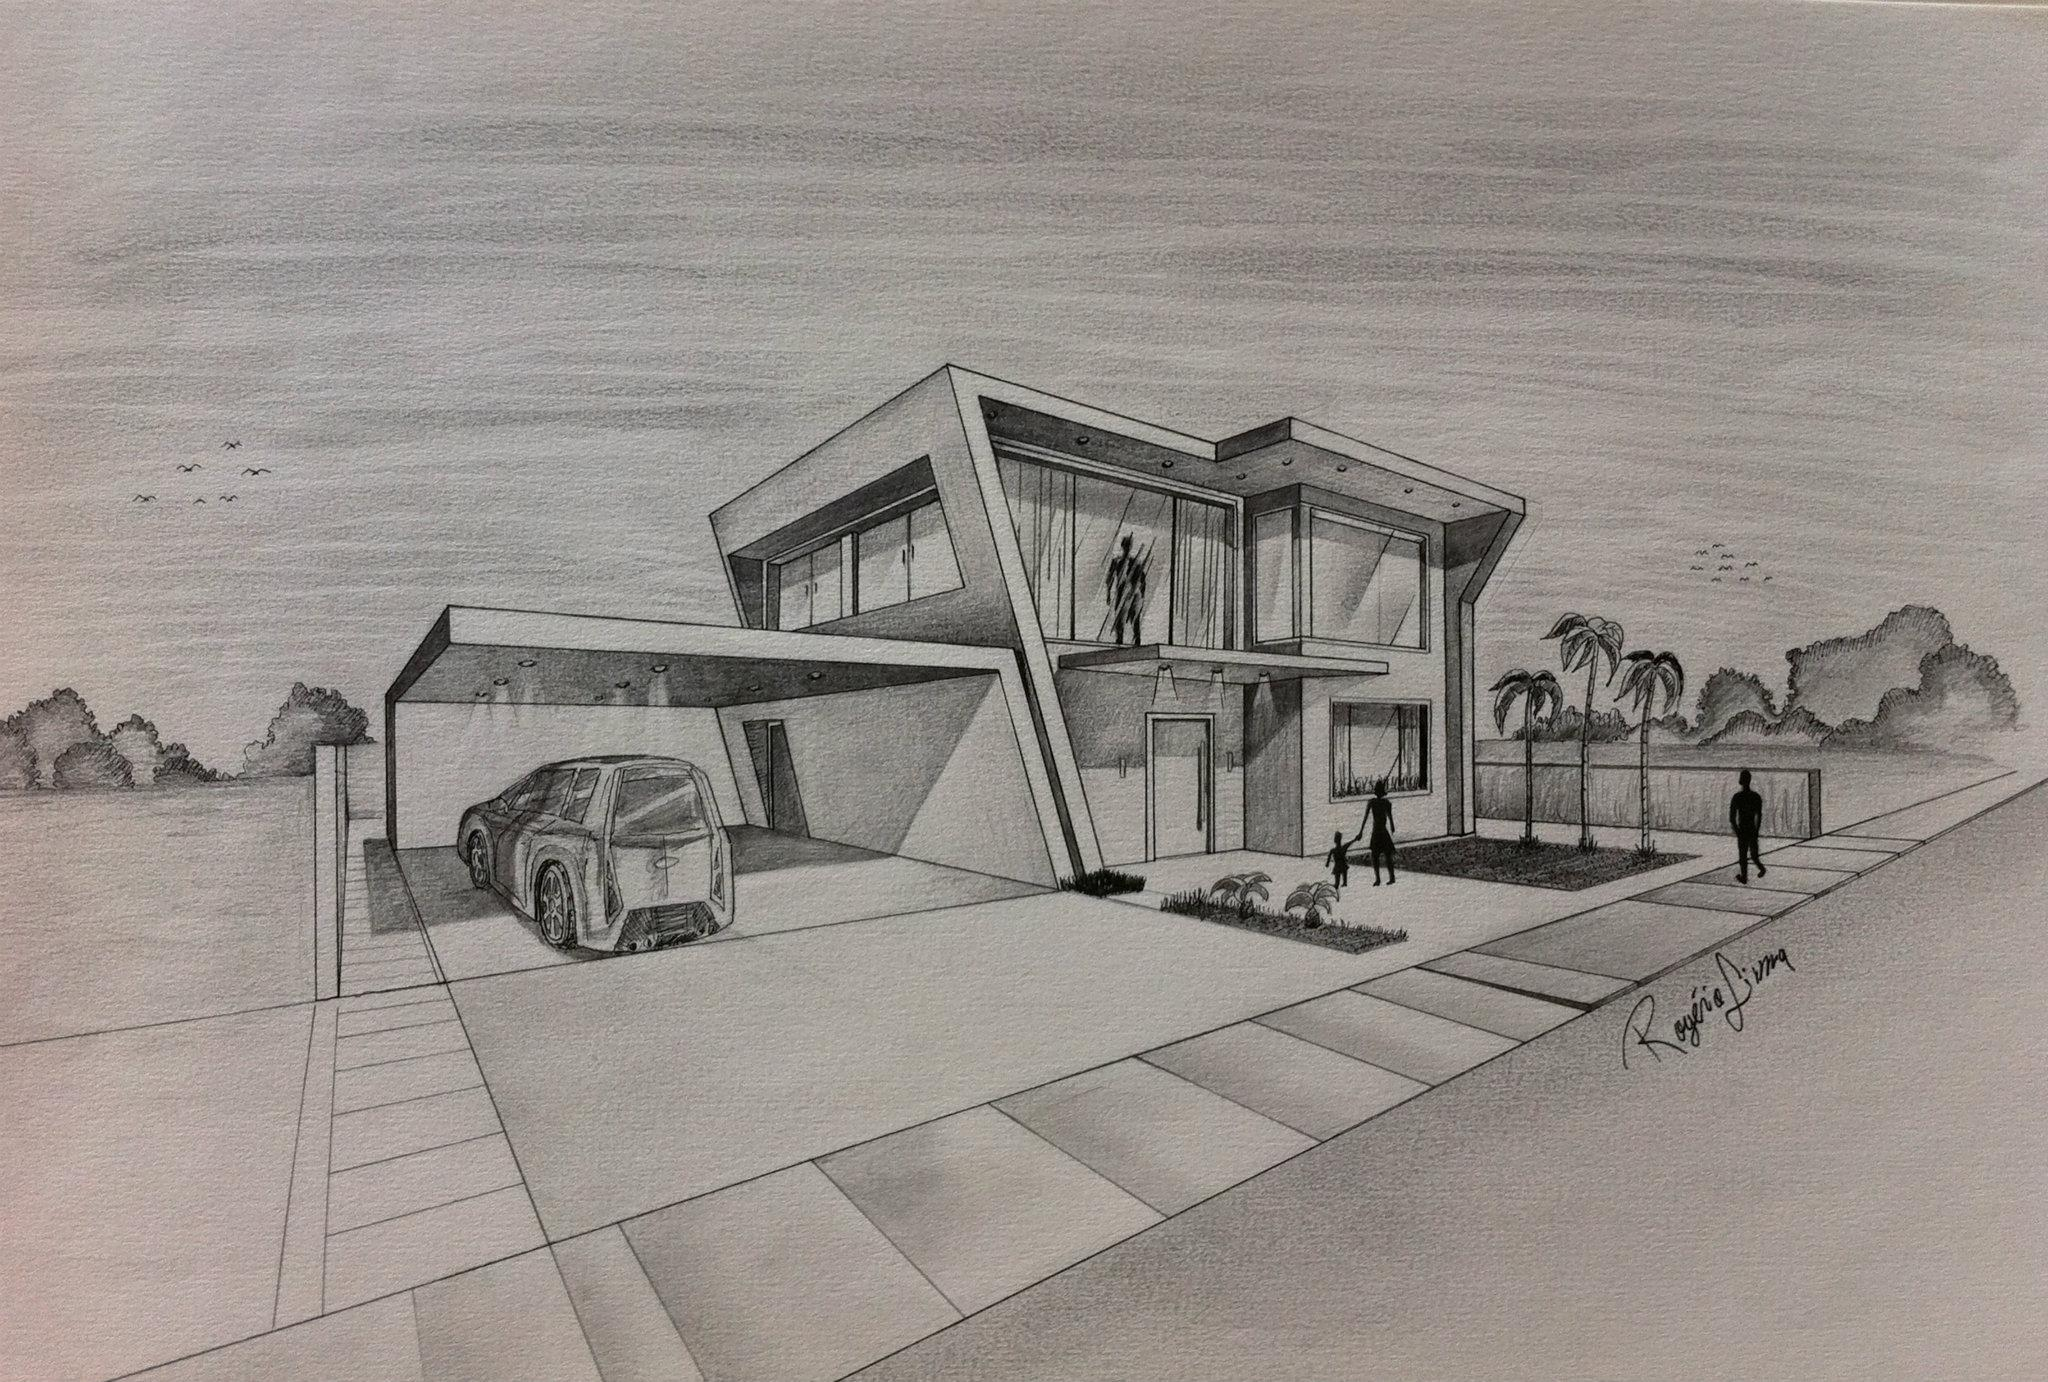 Architect hand drawing at free for for New way of building houses